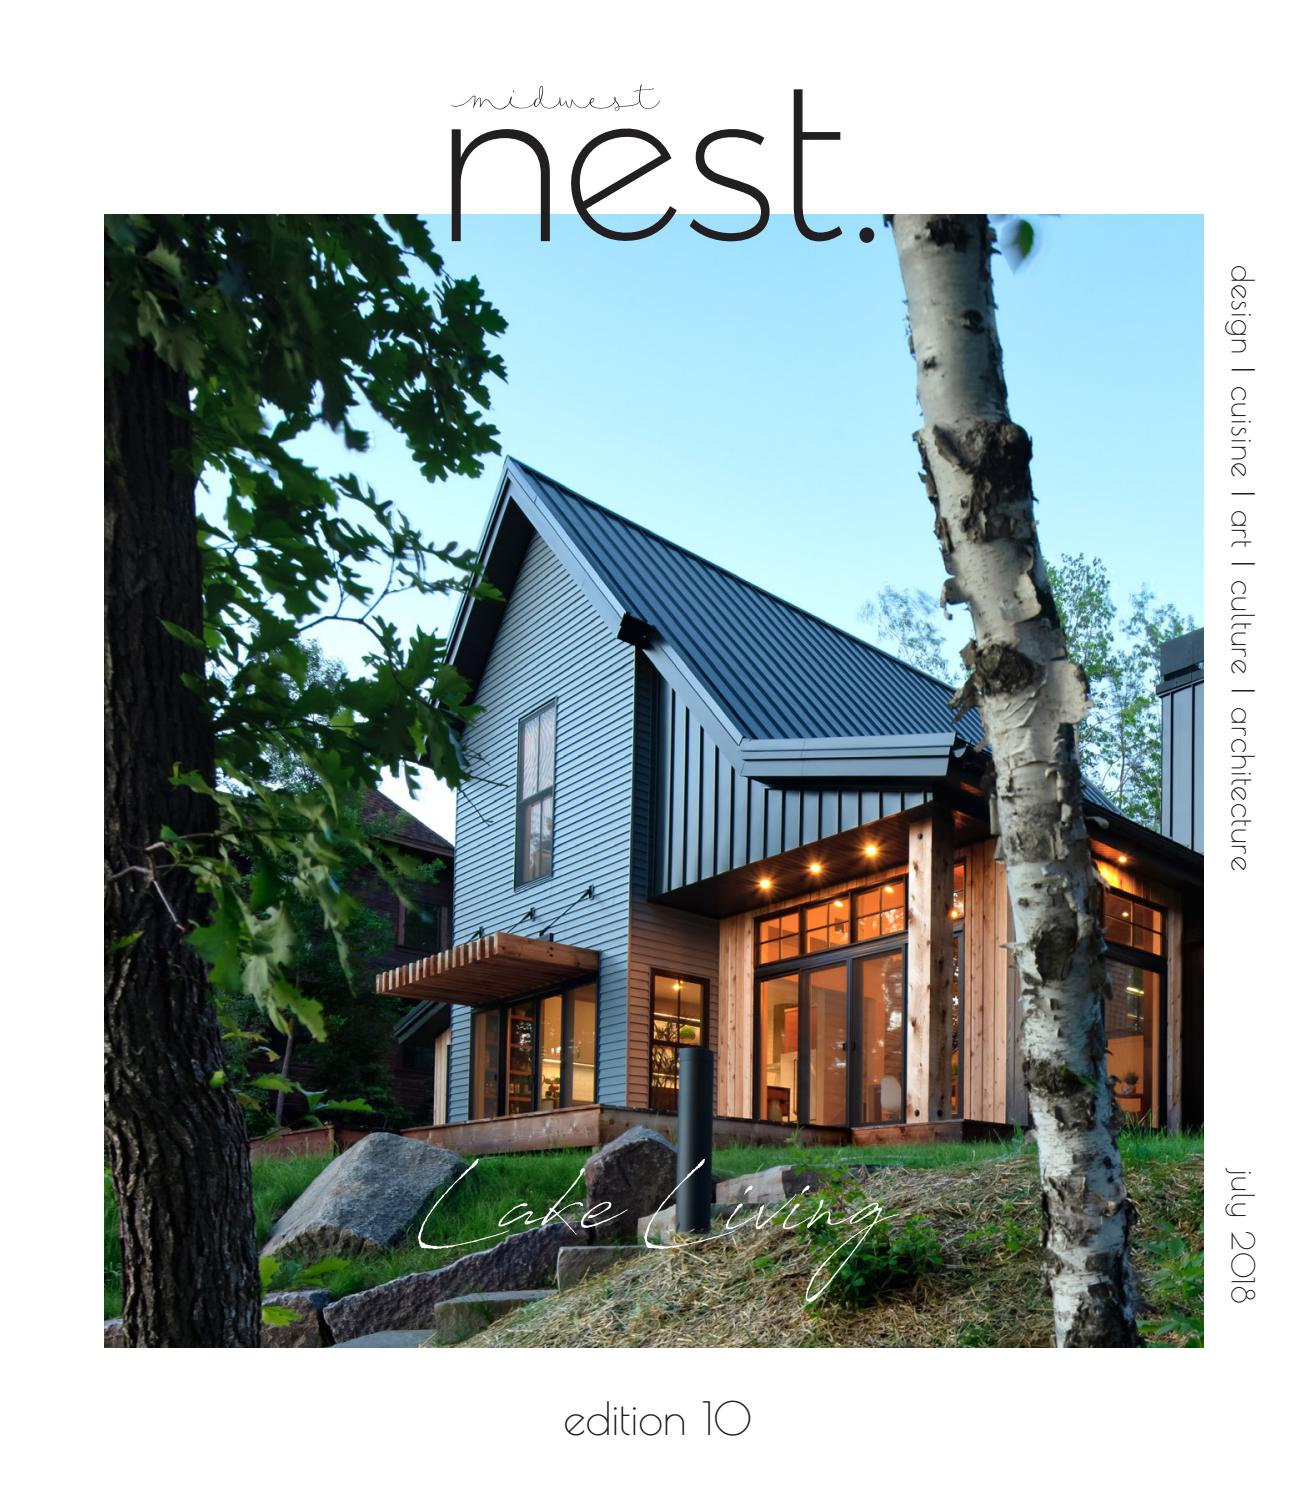 Midwest Nest - Edition 10 - July 2018 by Midwest Nest